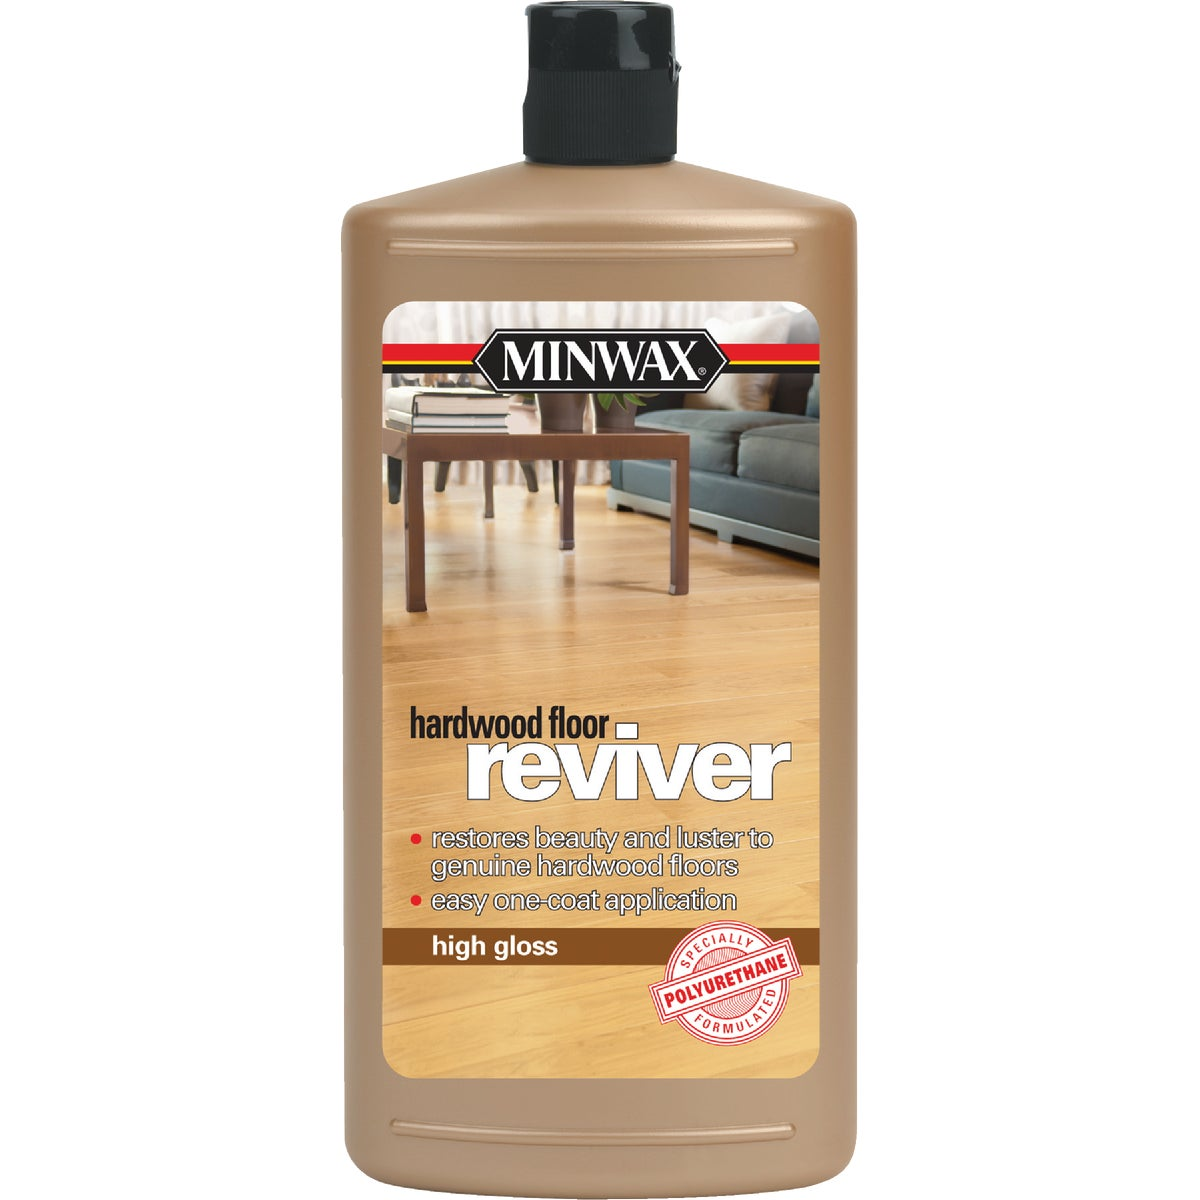 HIGH GLOSS FLOOR REVIVER